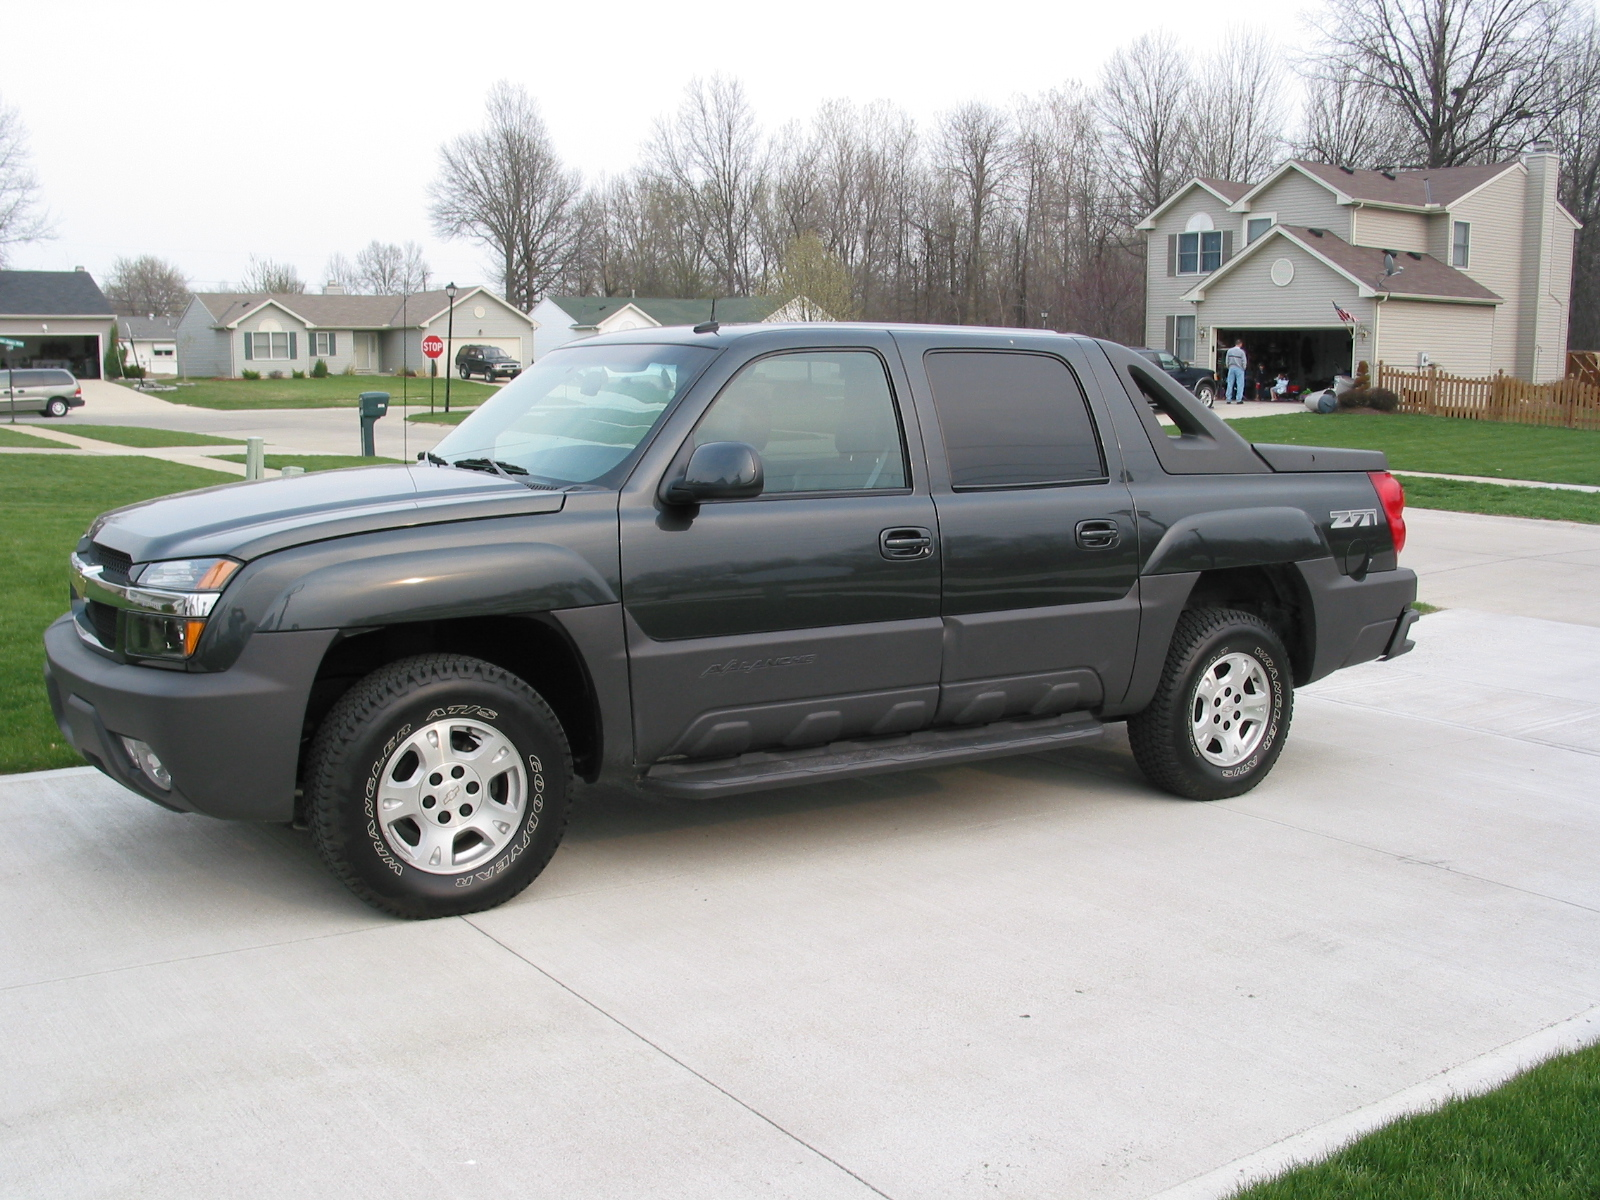 Picture of 2003 Chevrolet Avalanche 4 Dr 1500 4WD Crew Cab SB